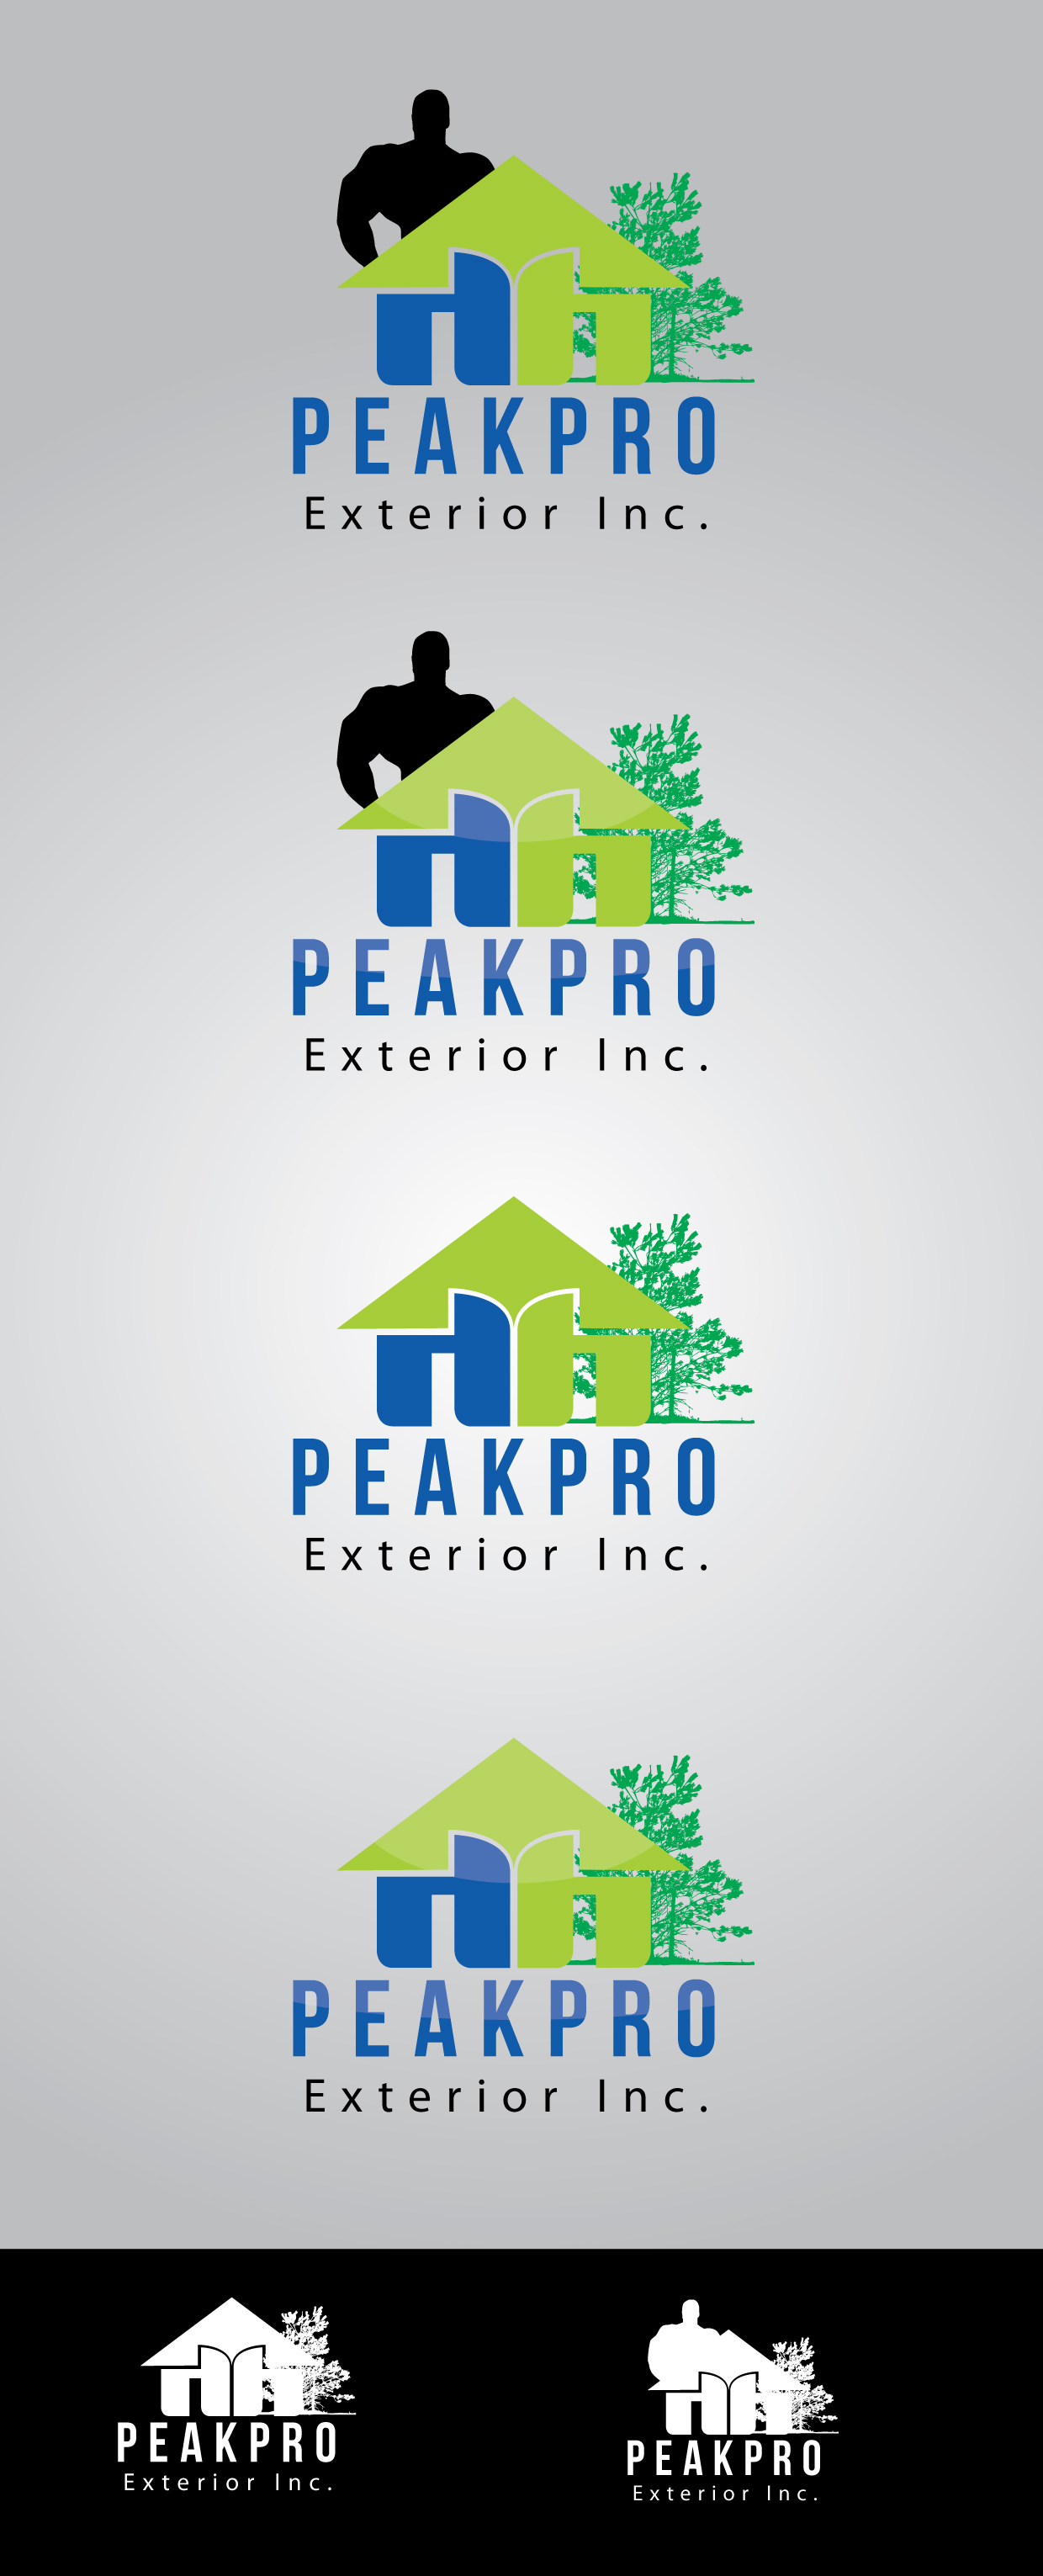 Logo Design by mediaproductionart - Entry No. 80 in the Logo Design Contest Captivating Logo Design for Peakpro Exteriors Inc..